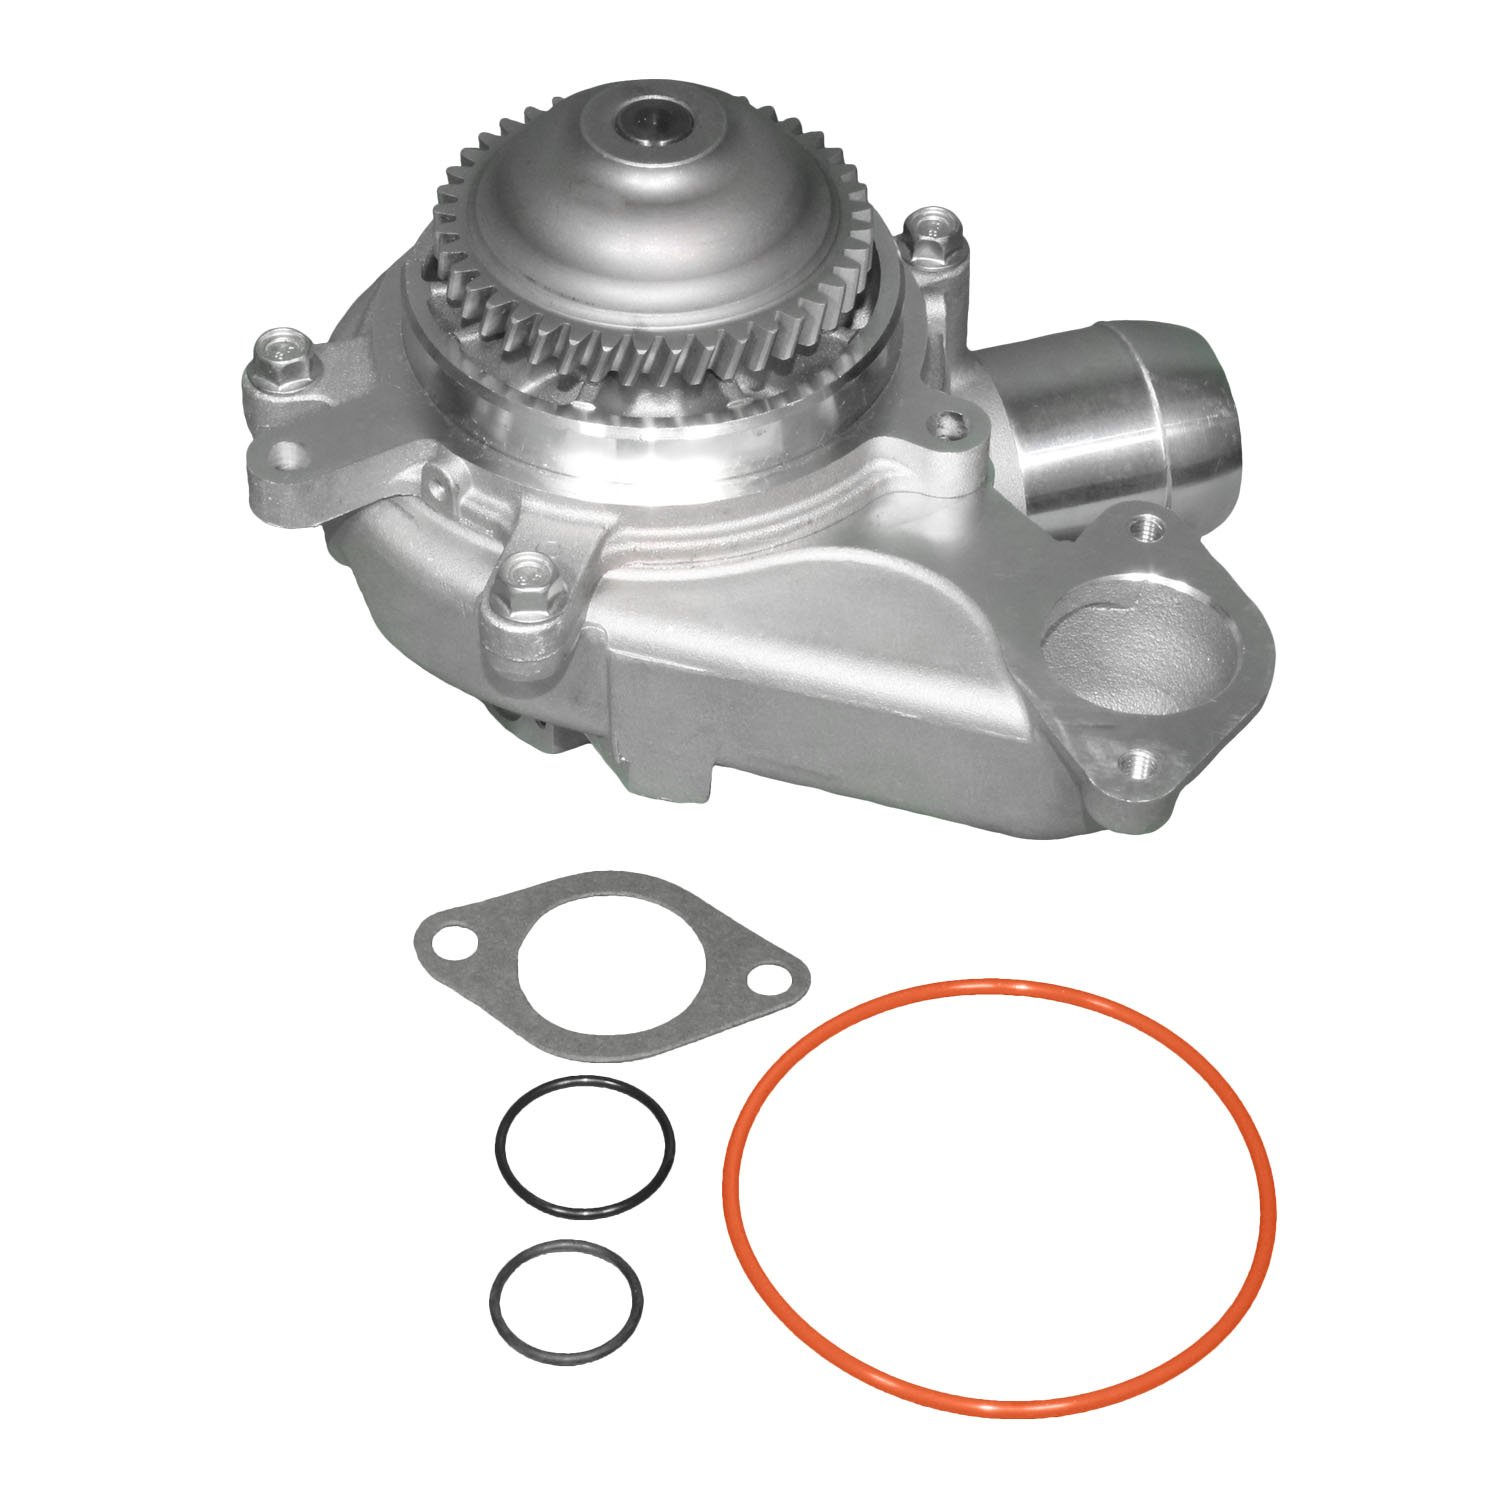 ACDelco 252-994 Professional Water Pump Kit by ACDelco